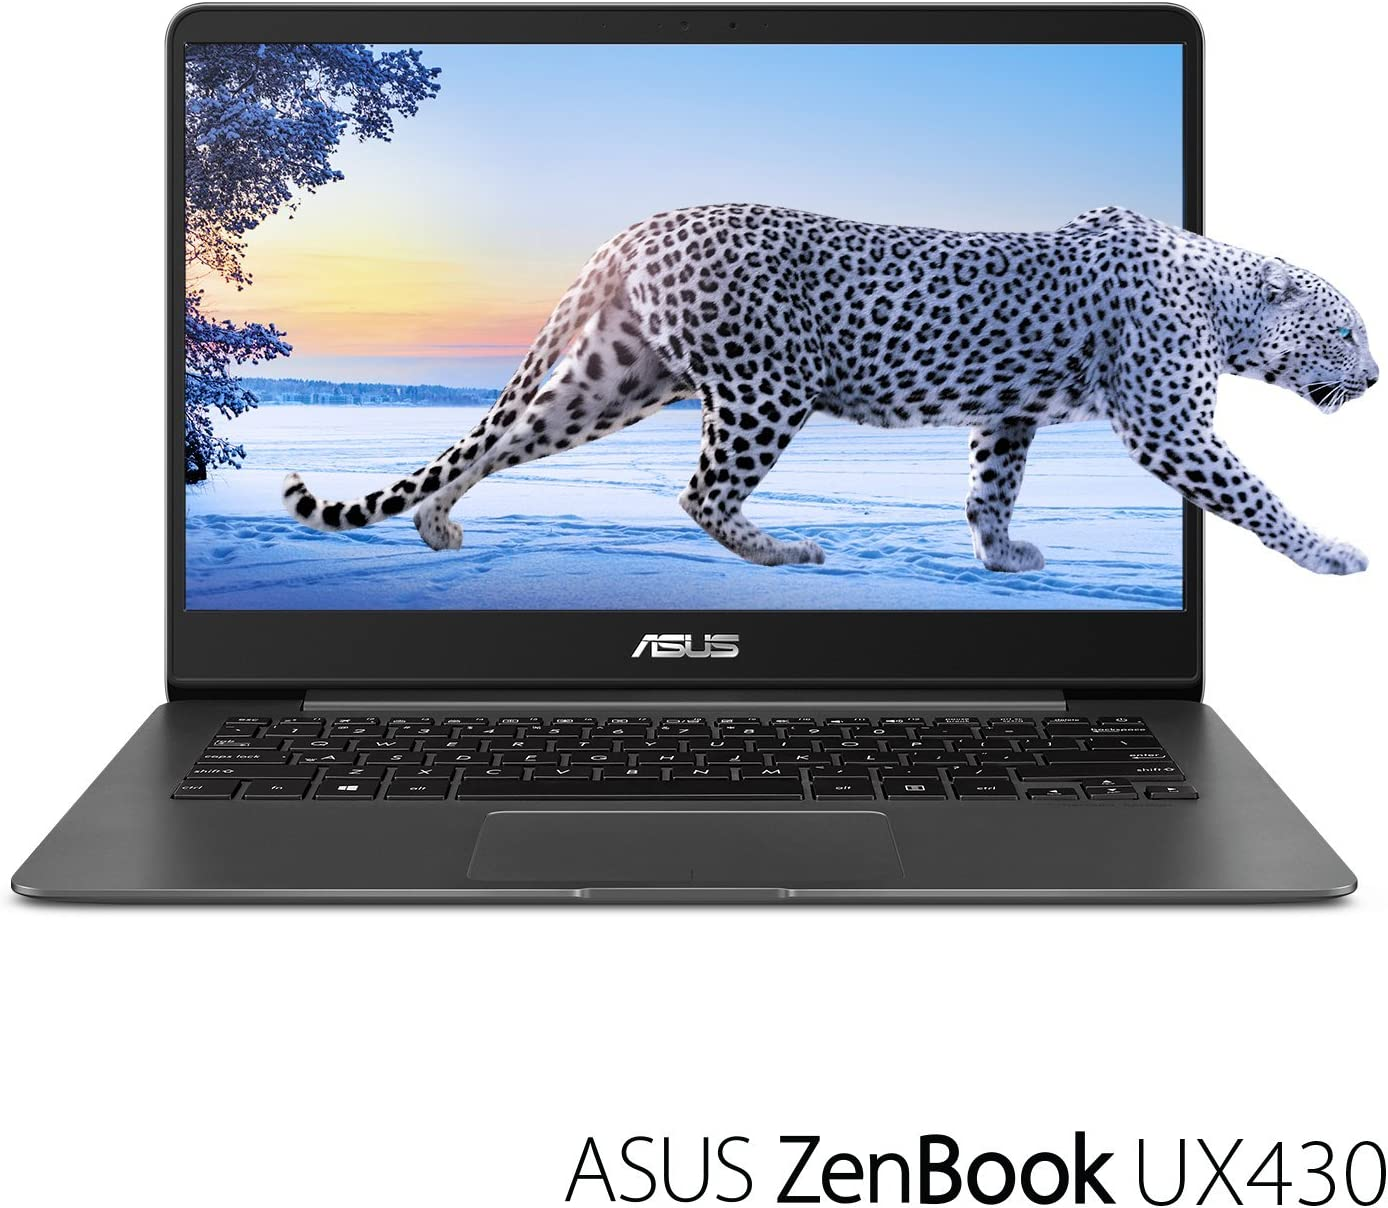 "ASUS ZenBook UX430UA-DH74 Ultra-Slim Laptop 14"" FHD wideview display 8th gen Intel Core i7 Processor, 16GB DDR3, 512GB SSD, Windows 10, Backlit keyboard, Quartz Grey (Renewed)"